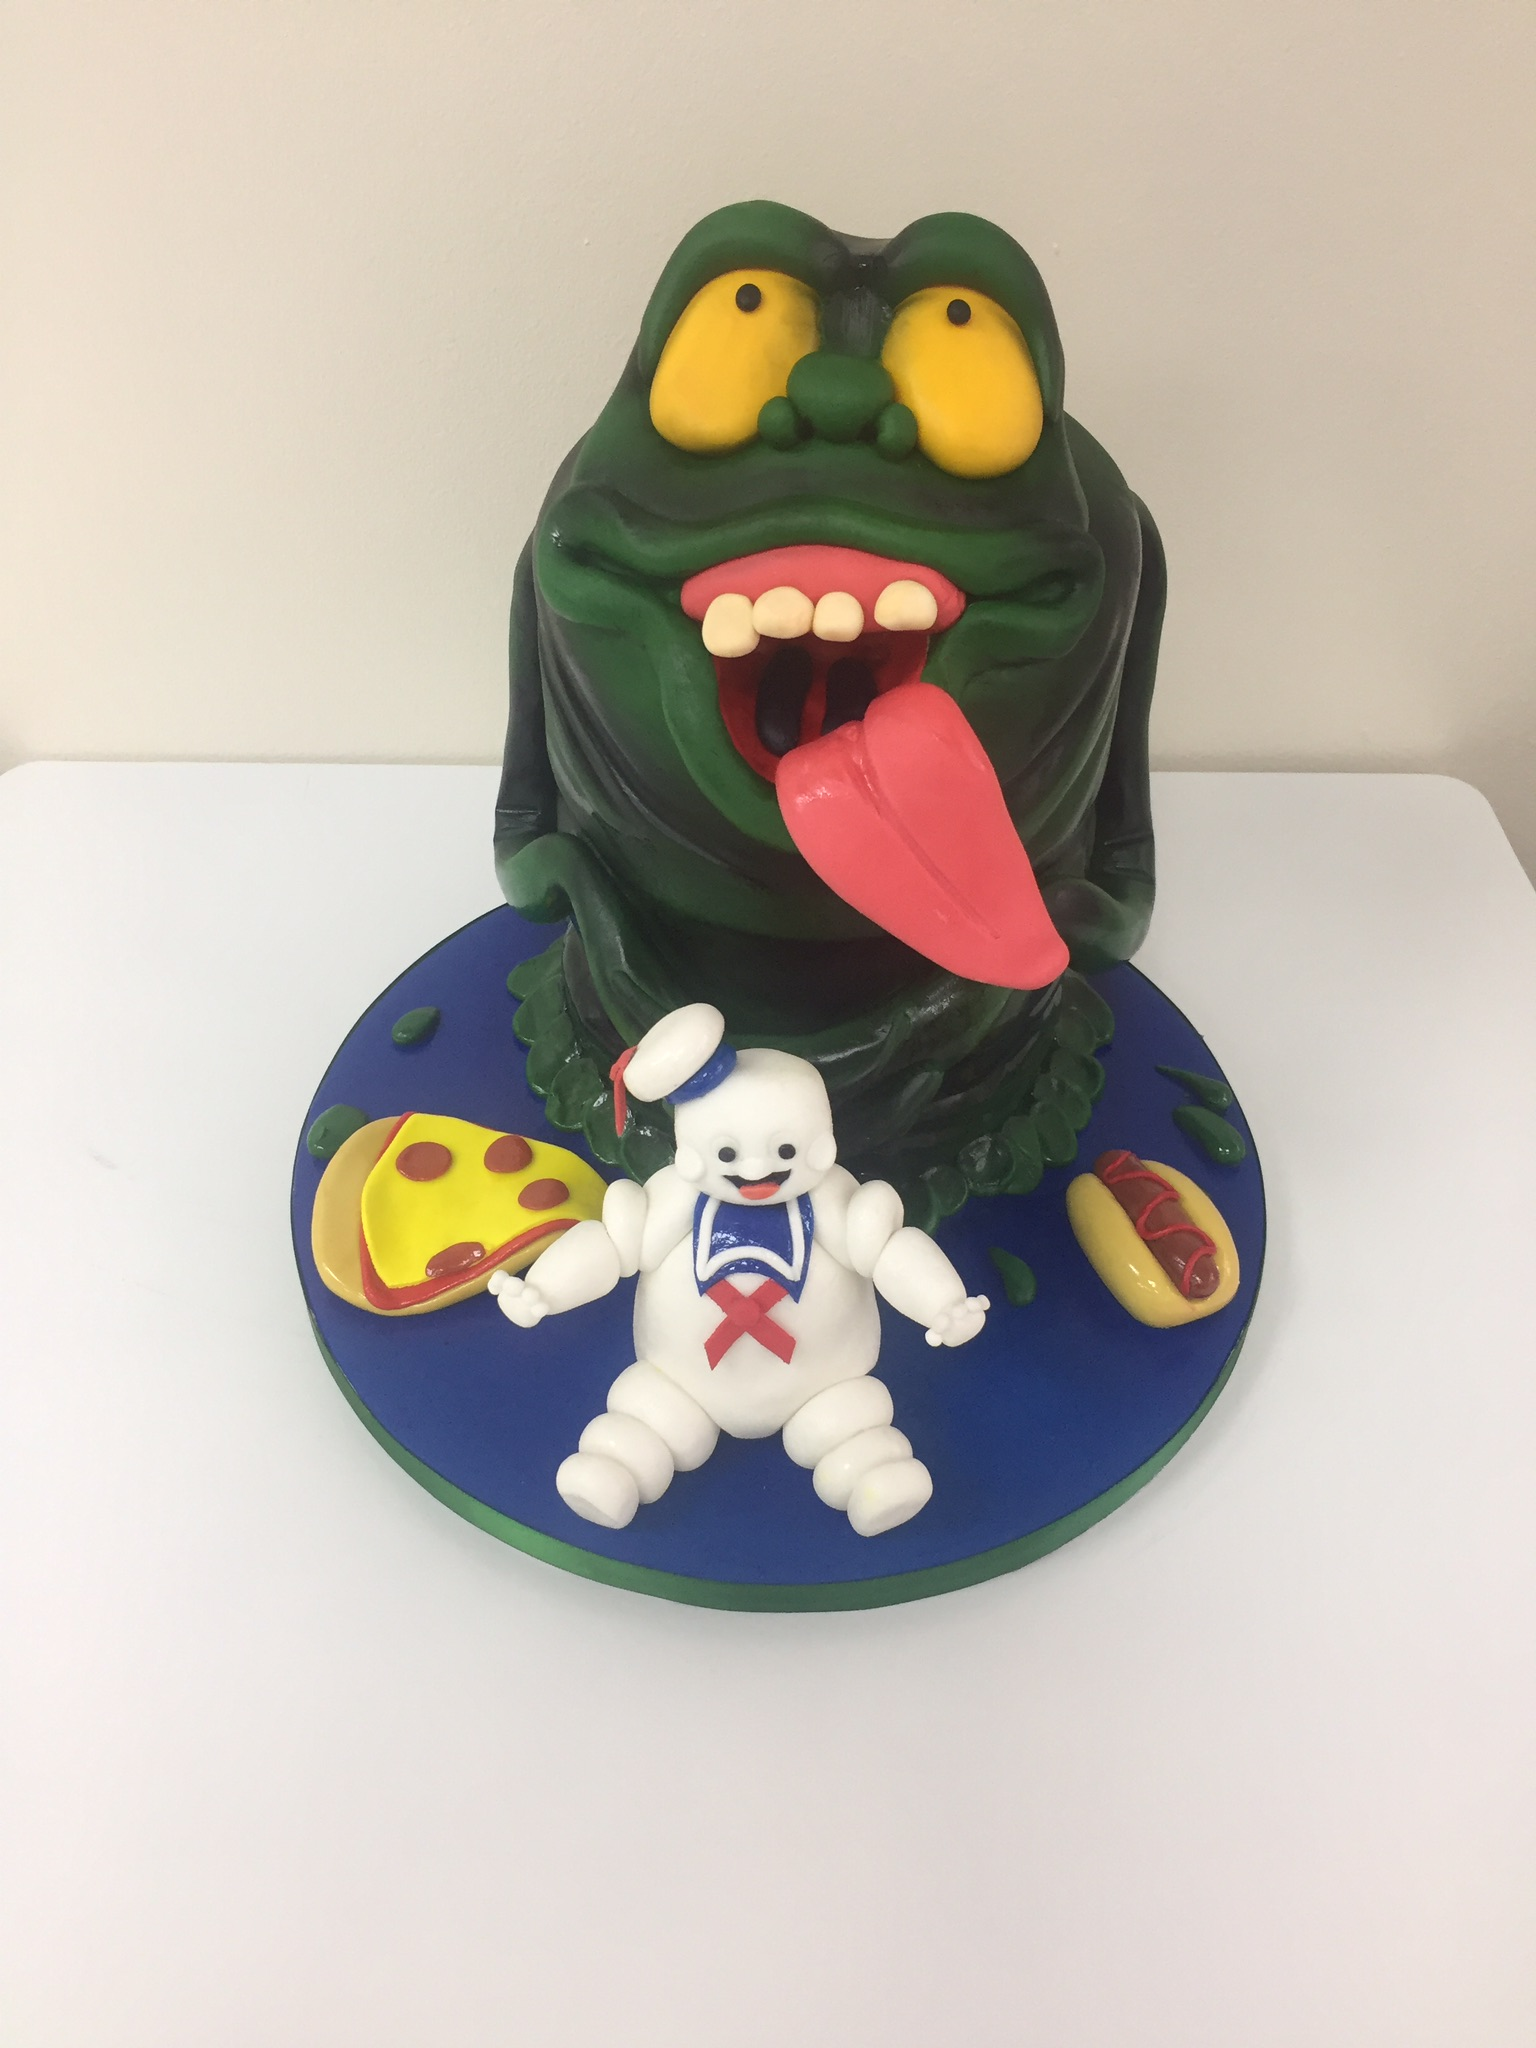 Outstanding Slimer Ghostbusters Novelty Birthday Cake Luscious Lovelies Cakes Funny Birthday Cards Online Alyptdamsfinfo